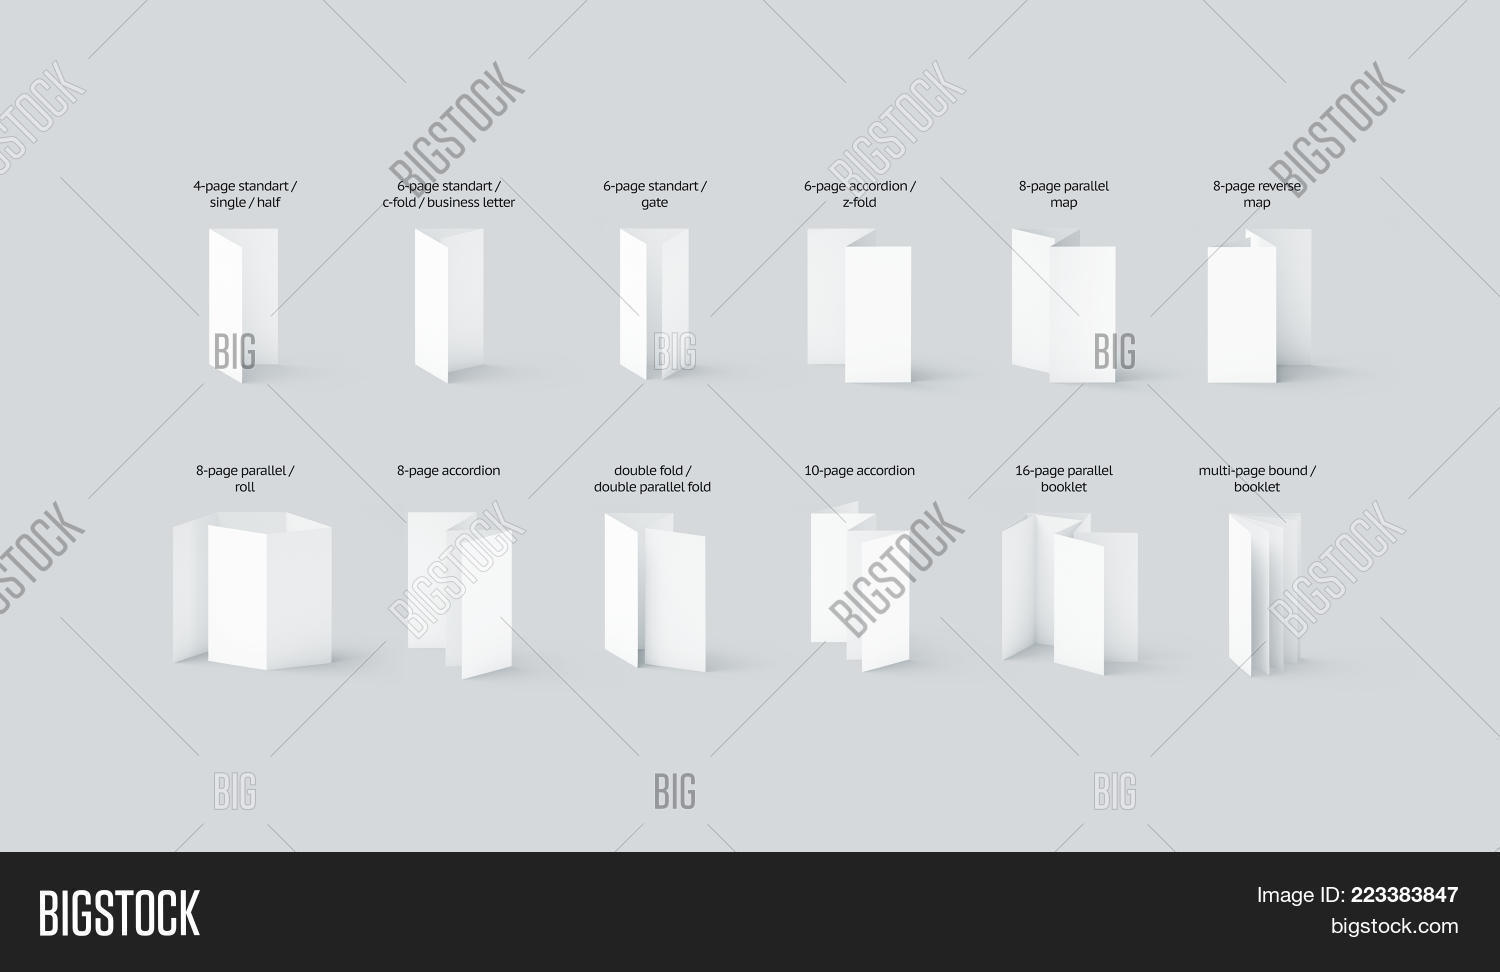 Blank Flyers Booklets Image & Photo (Free Trial) | Bigstock